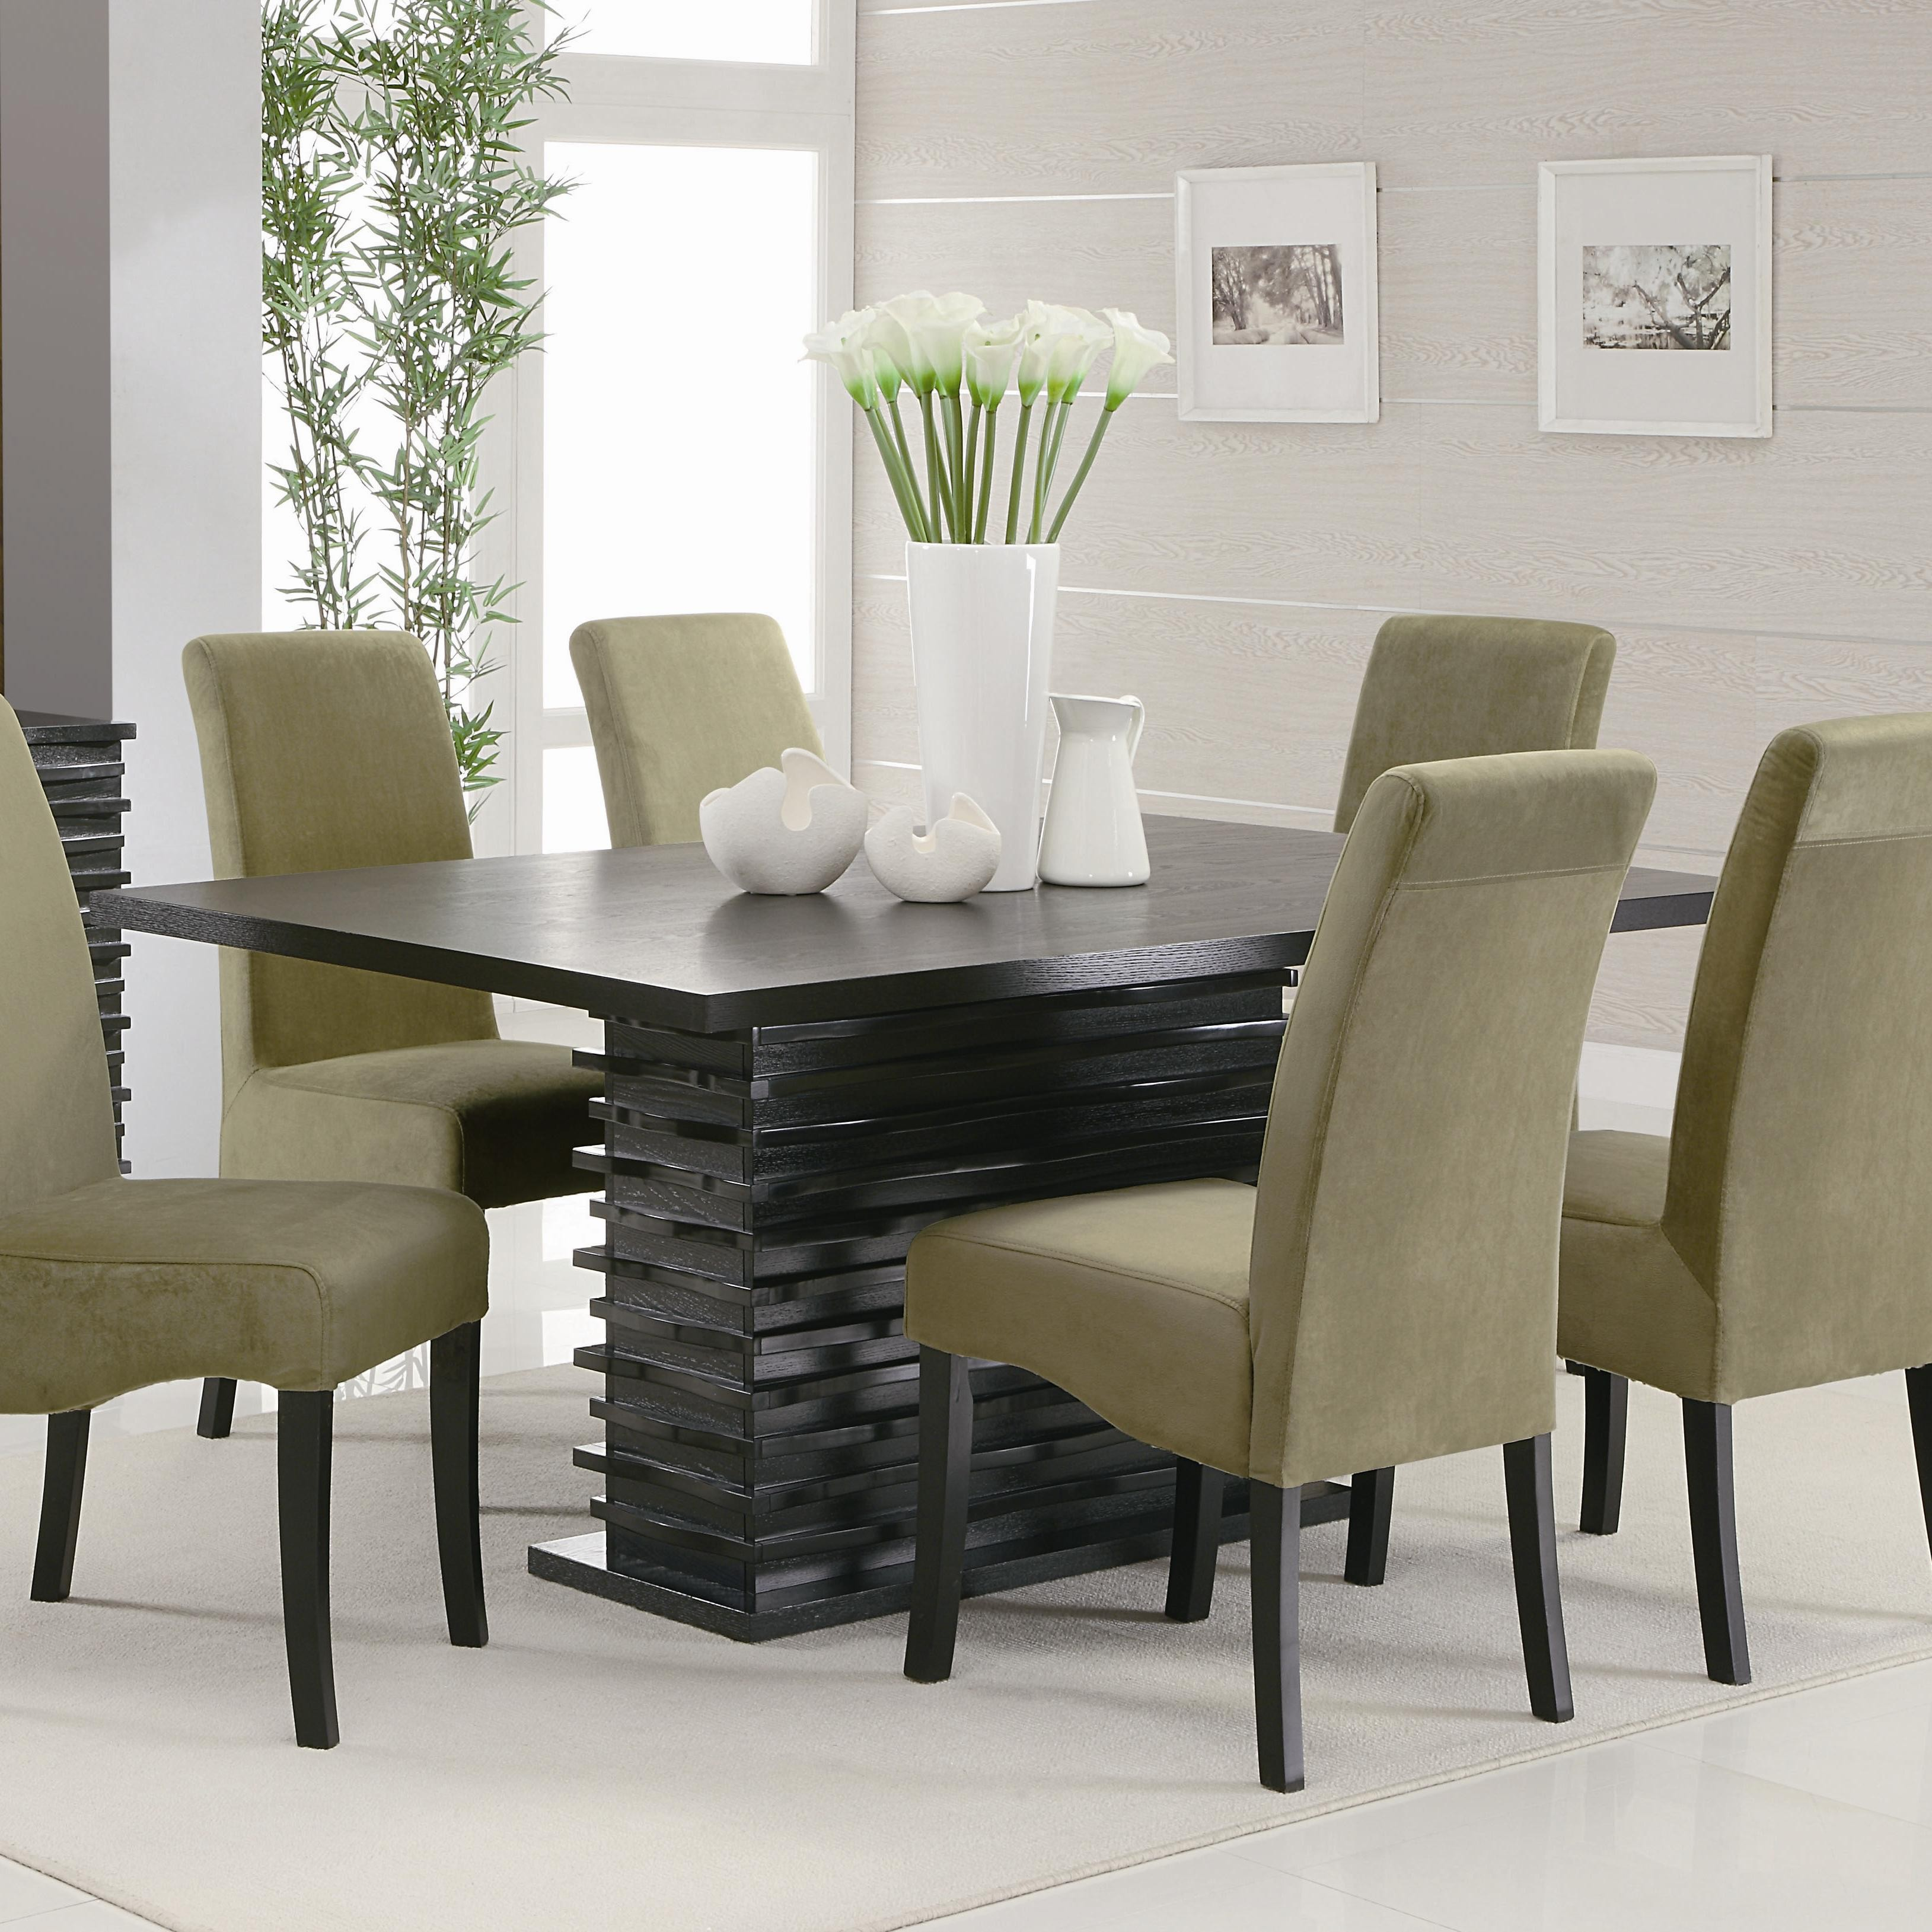 Rectangle Black Wooden Table Combined With Cream Leather Chairs Legs White Floor Dining